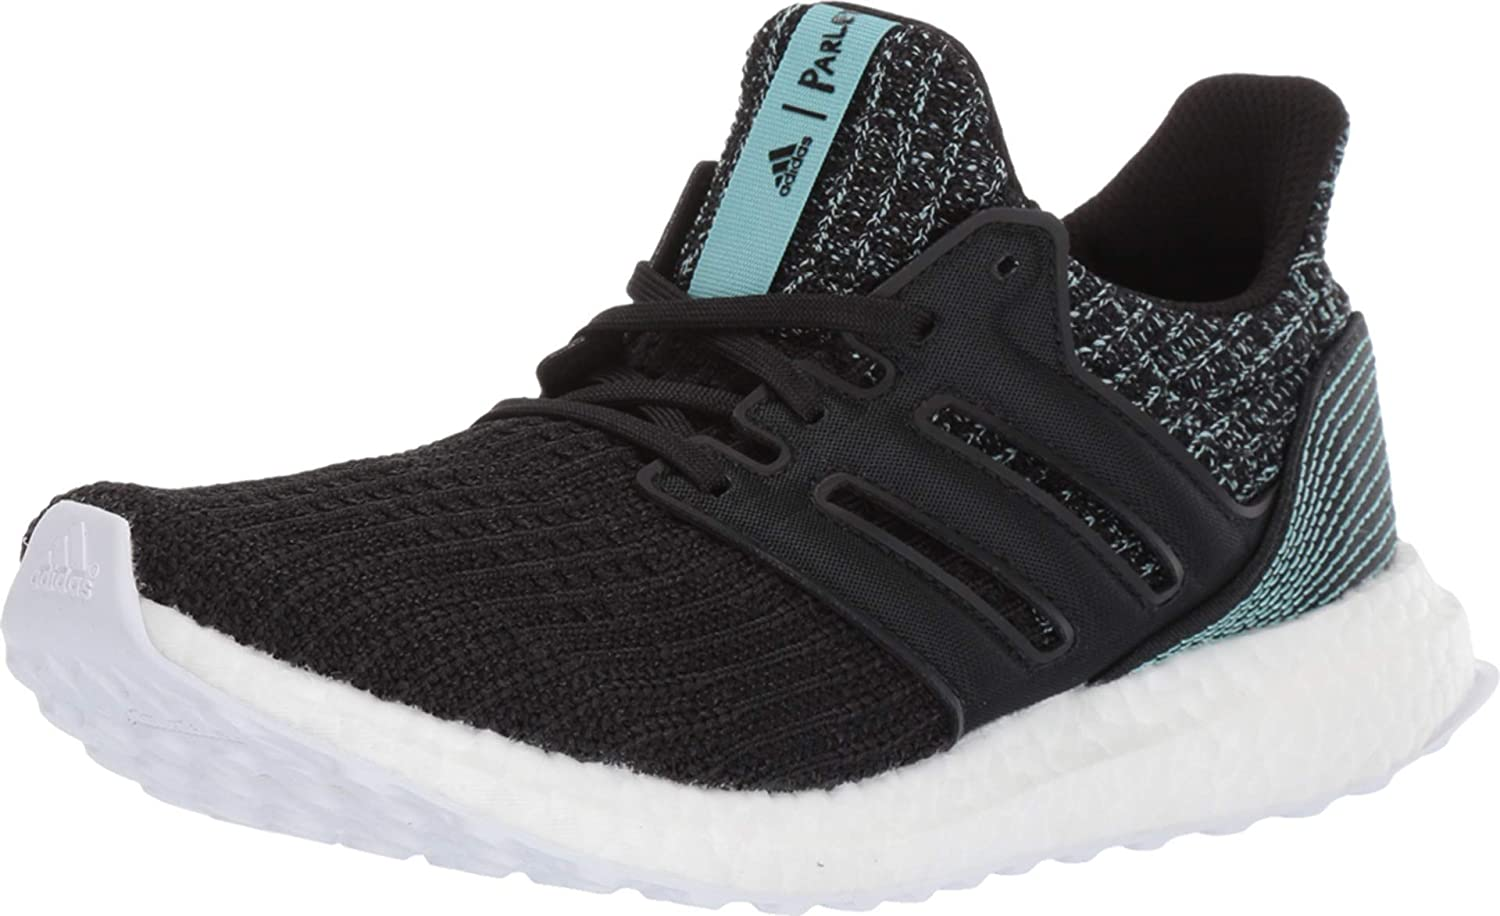 Ultraboost Parley Running Shoes